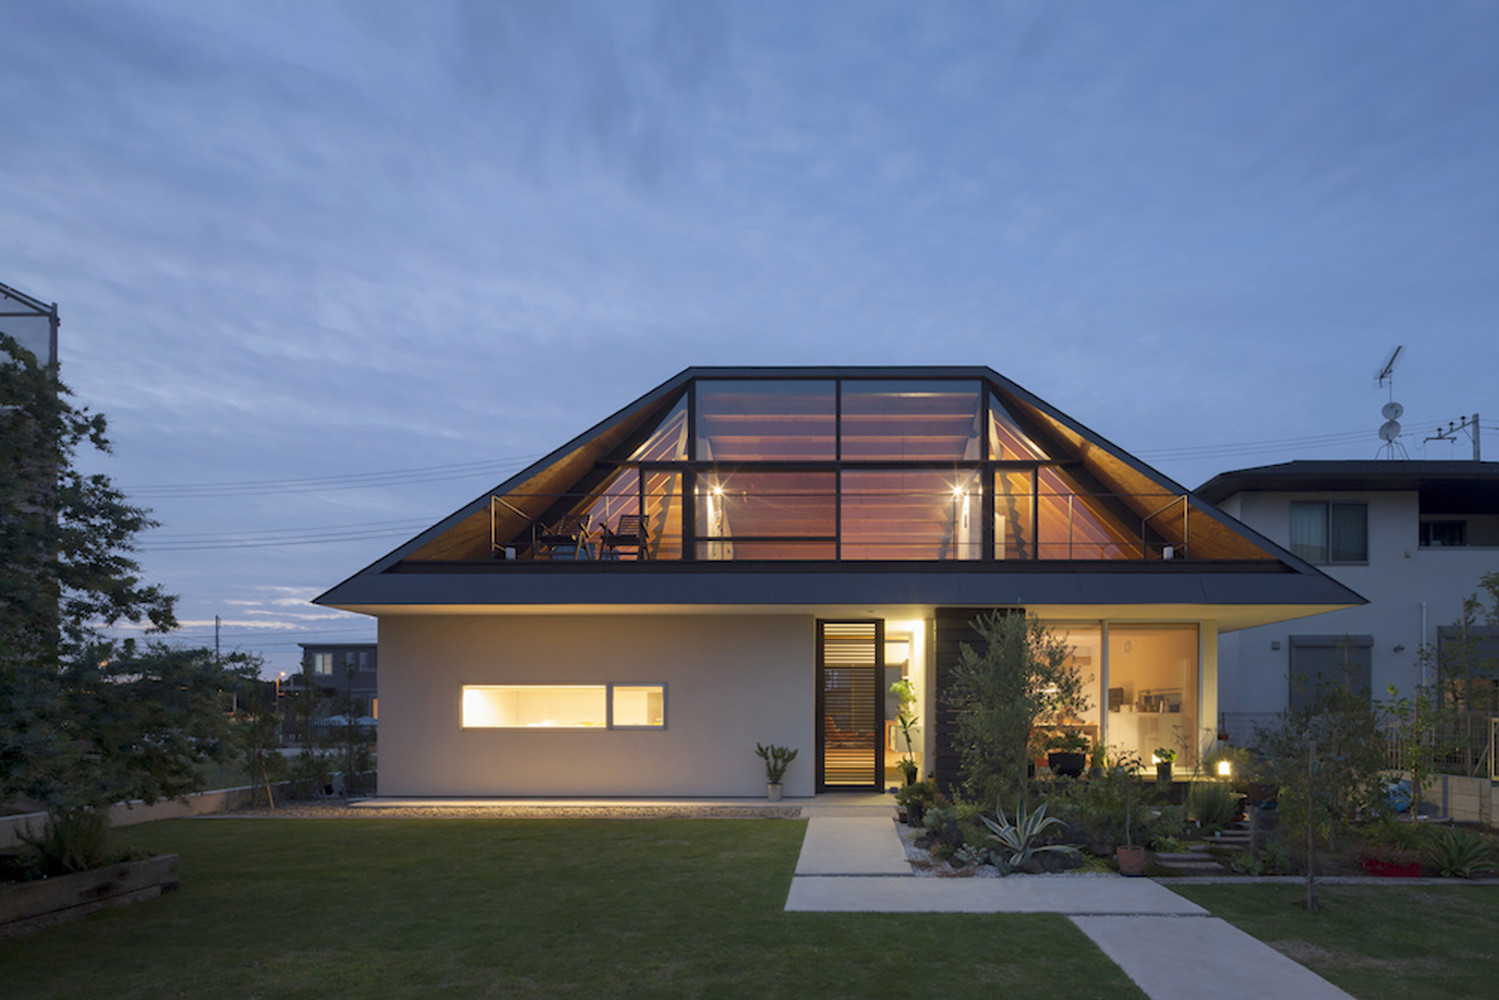 Nature-friendly Architectural Design Ideas: The Large